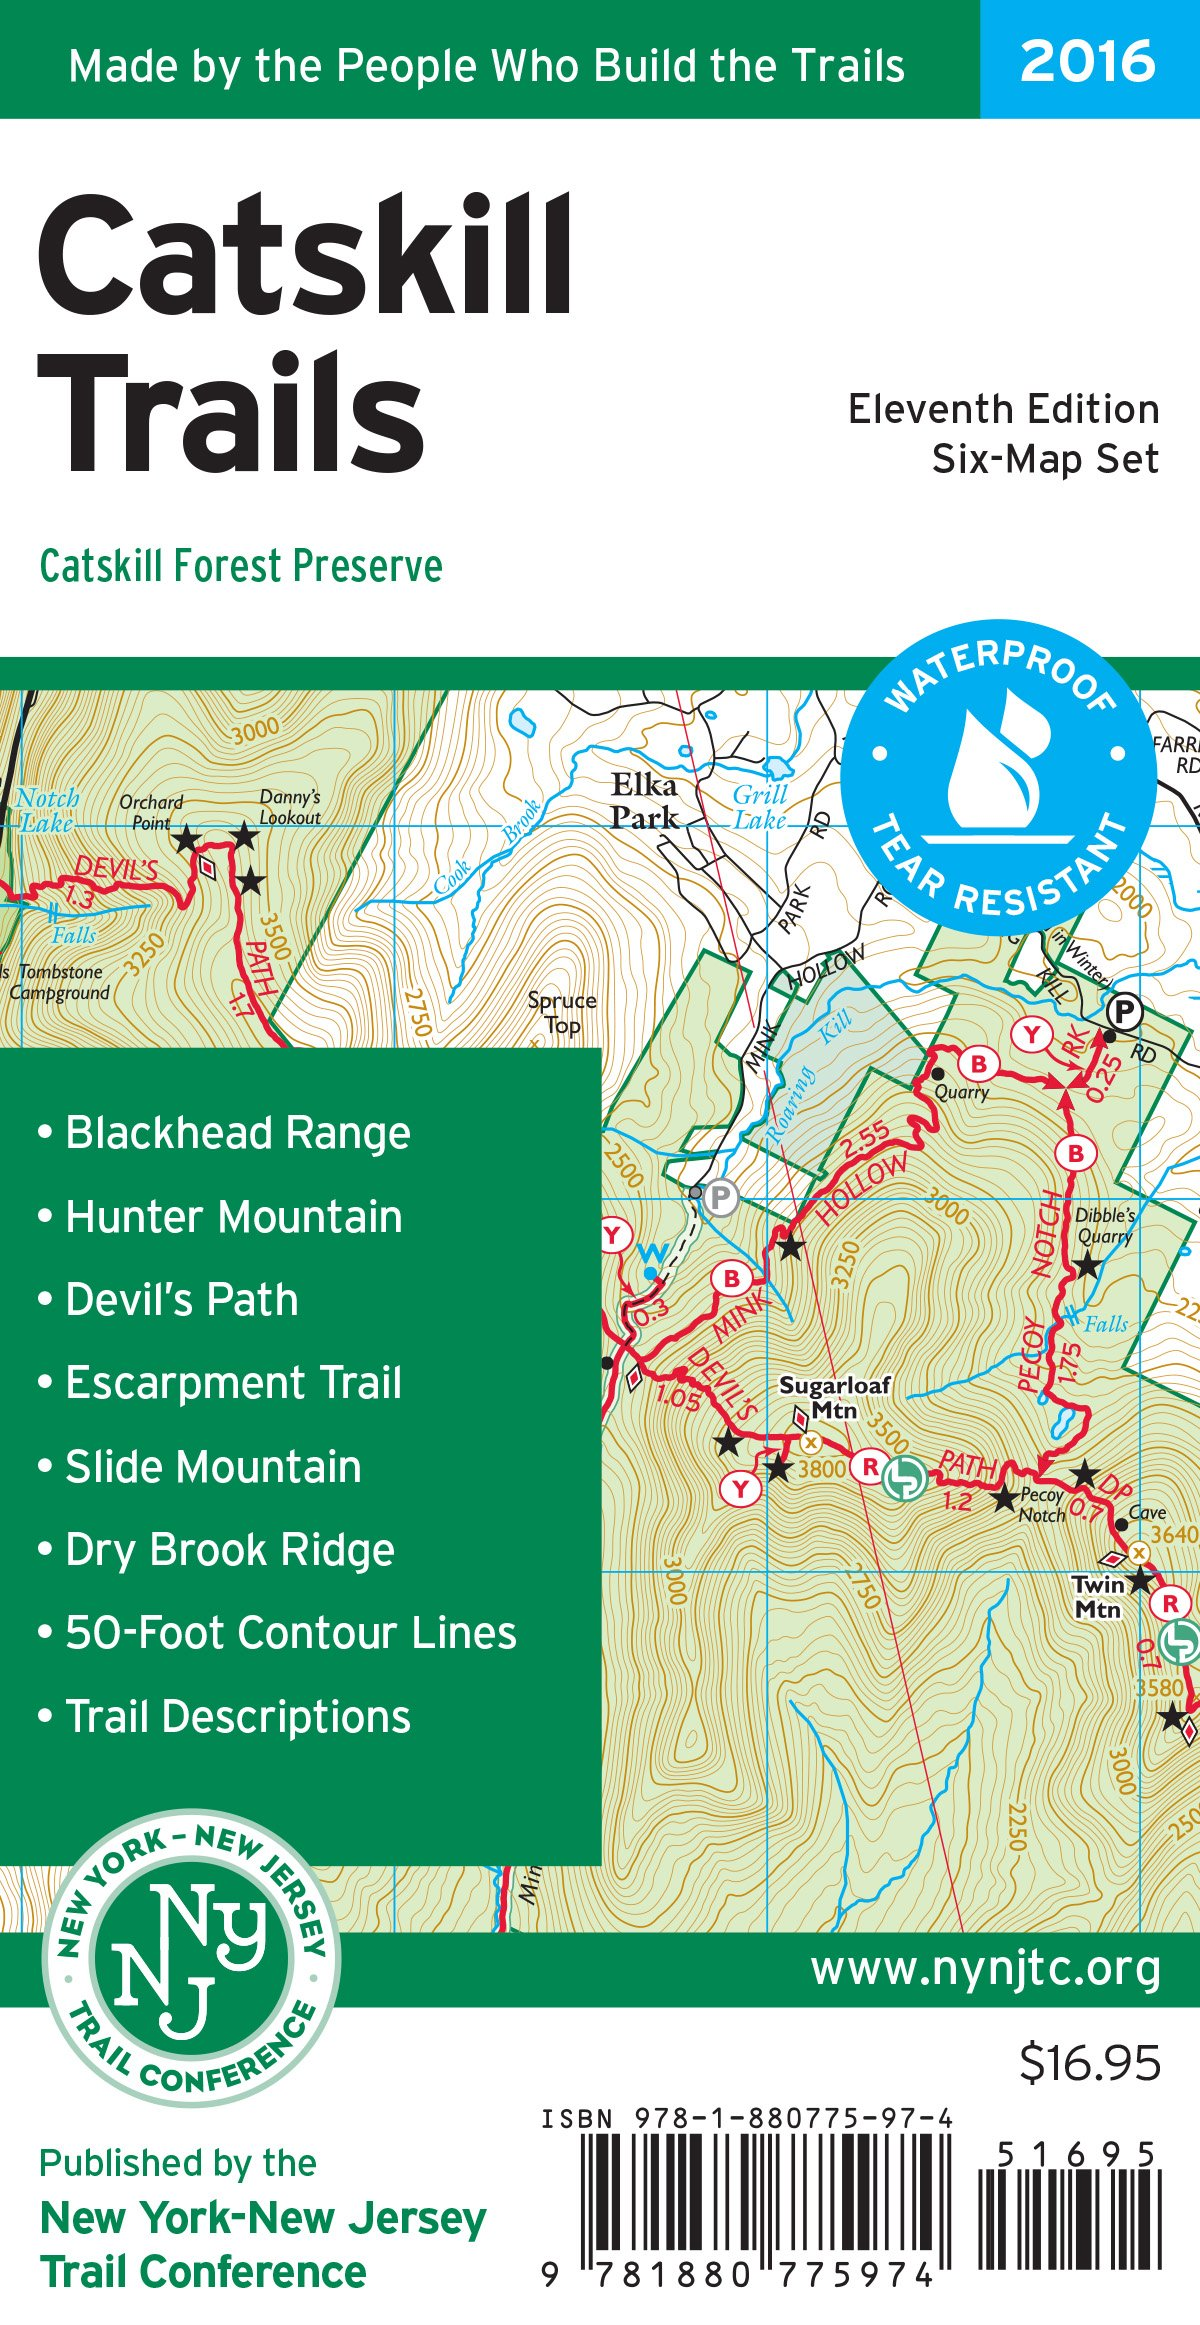 Catskill Trails Map Catskill Forest Preserve New York,New